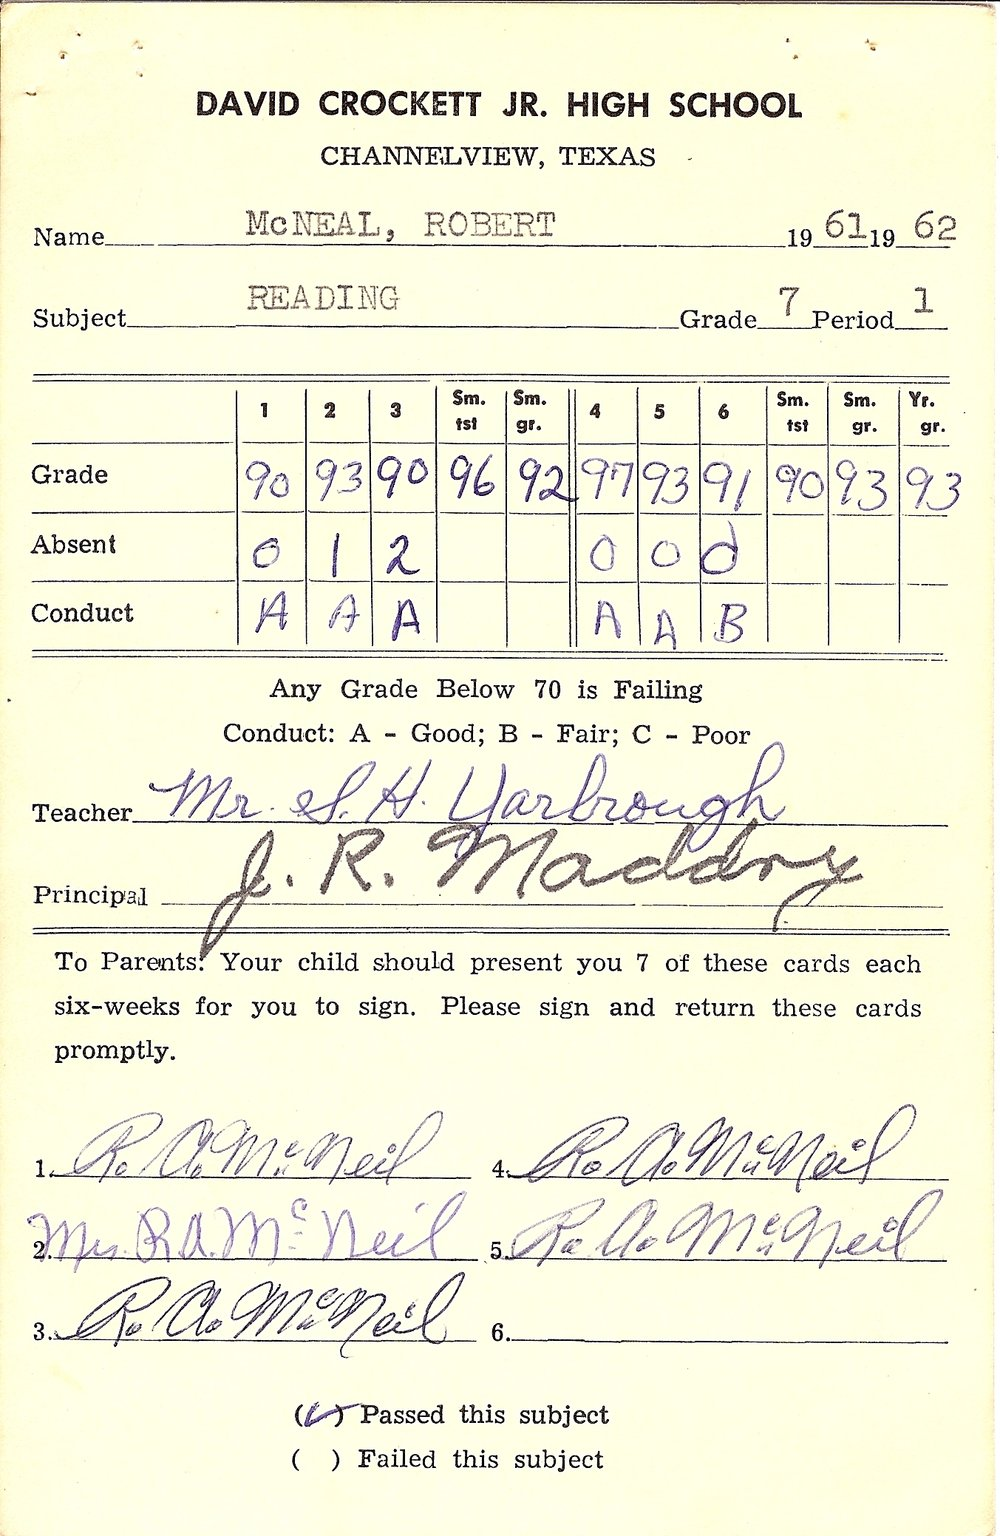 Bob McNeil - 1962 - Age 13 - Seventh Grade Reading Report Card